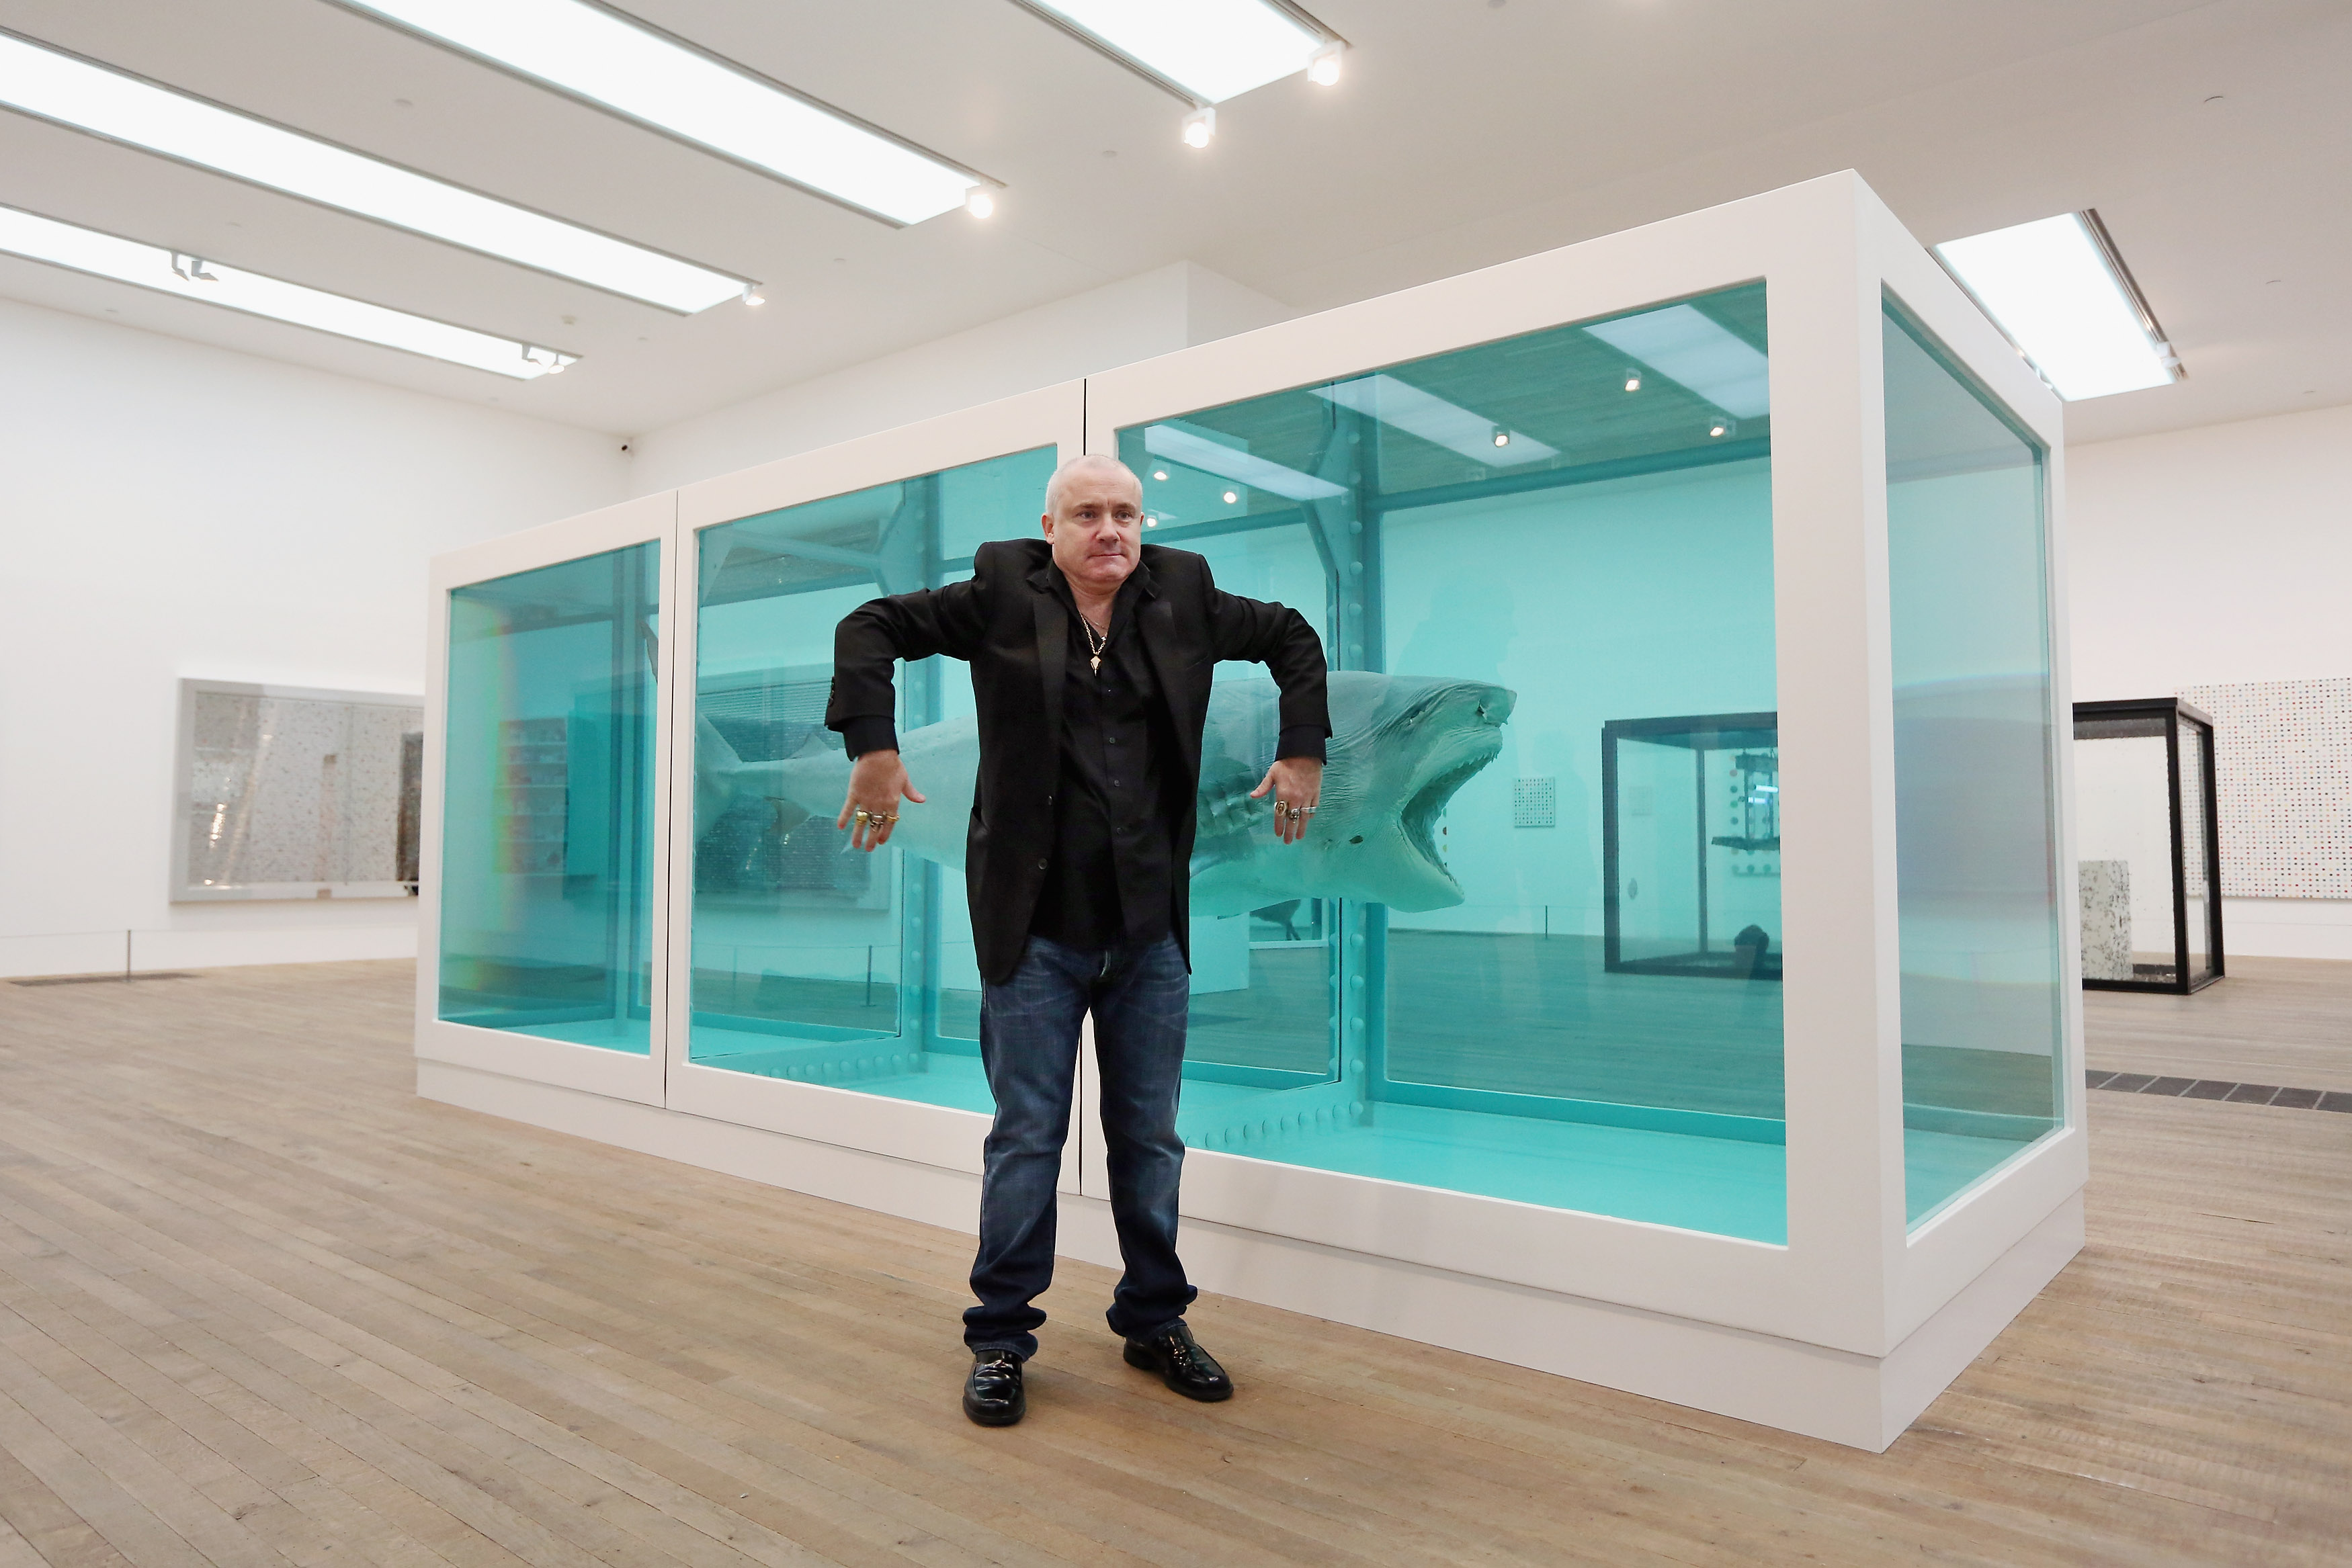 Damien Hirst poses with his formaldehyde shark — the Cock and Bull artist dined at Piccadilly hotel The Wolseley in London this week